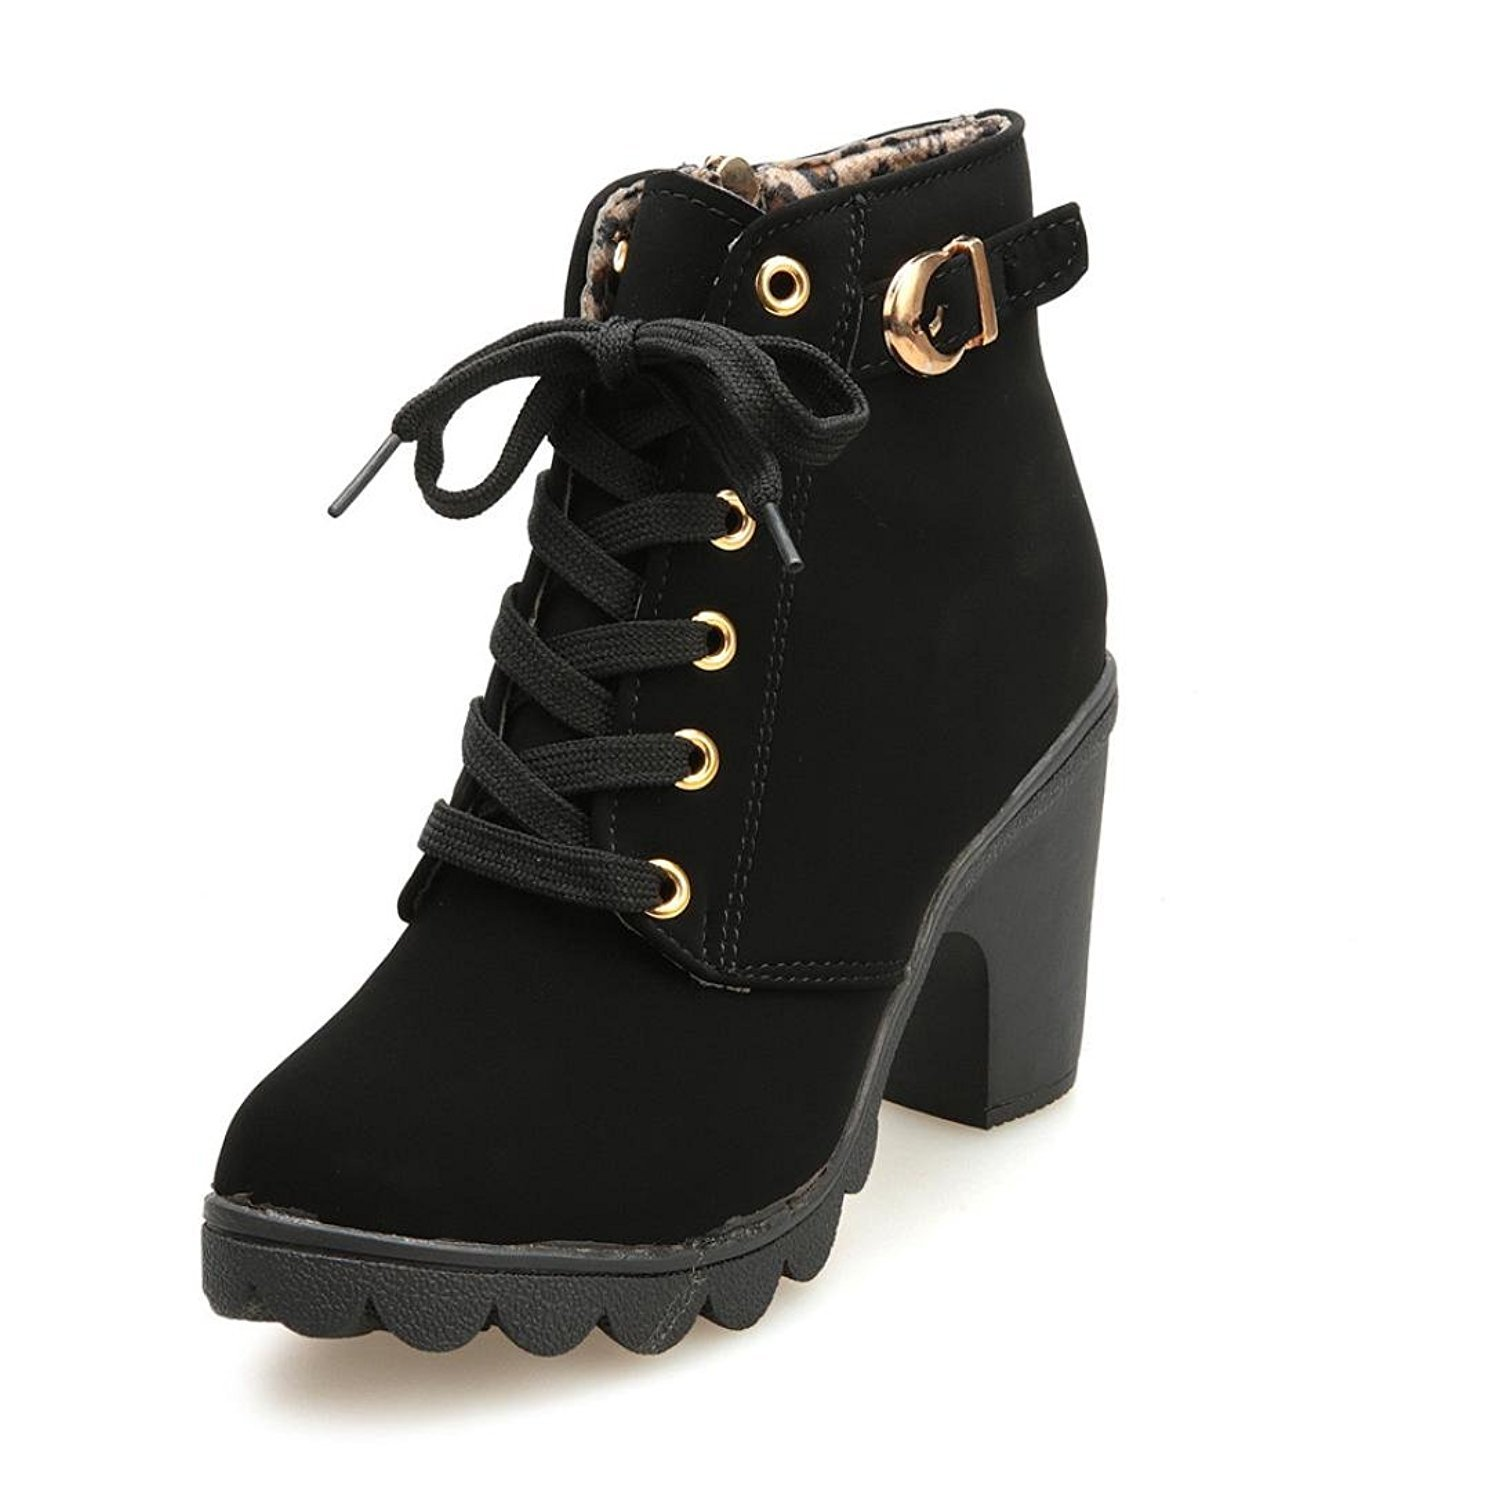 Jacky's Pumps Shoes High New Quality Comfortable Winter Pump lace up Zipper high Heels Boots for Women (7, Black)